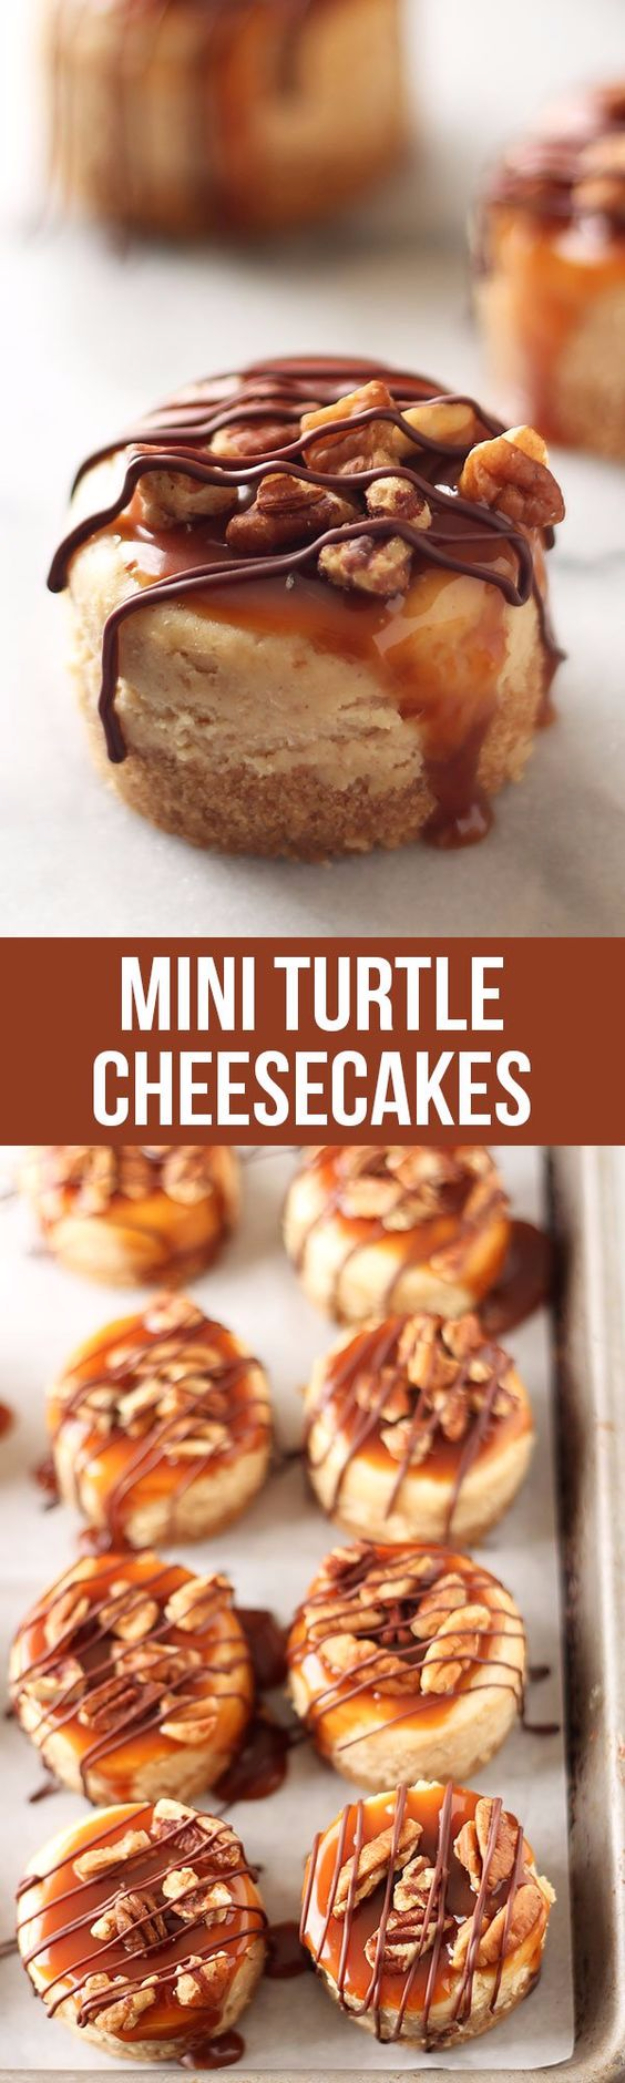 Last Minute Dessert Recipes and Ideas - Mini Turtle Cheesecakes - Healthy and Easy Ideas for No Bake Recipe Foods, Chocolate, Peanut Butter. Best Simple Ideas for Summer, For A Crowd and for Parties